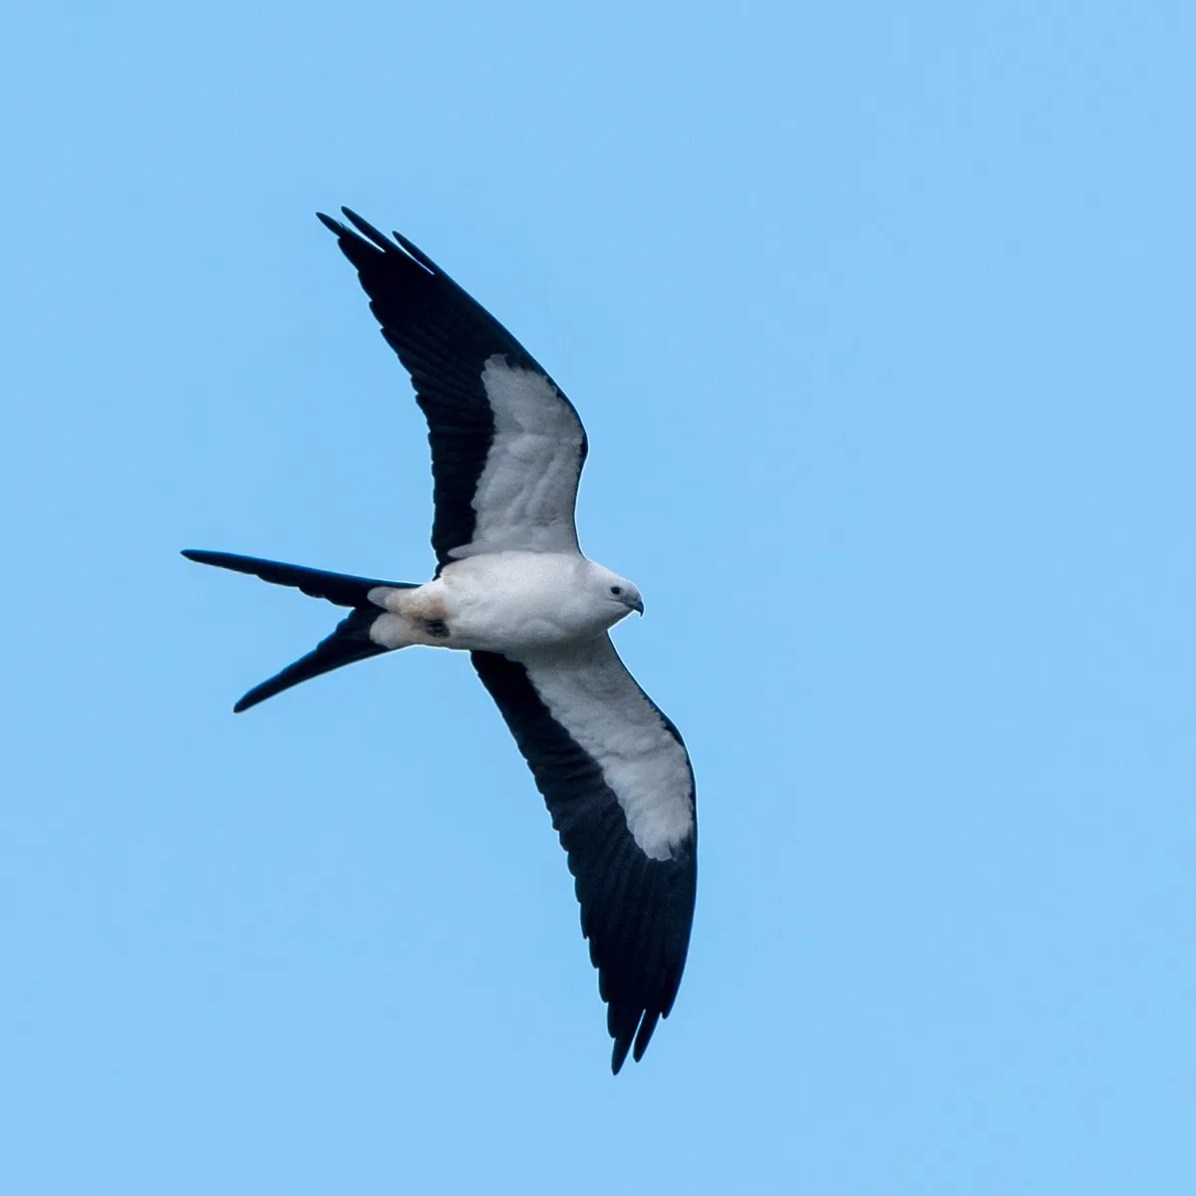 Swallow-tailed Kite is a much hoped for spring vagrant in Bermuda. LeShun Smith was the only local birder lucky enough to see and photograph one on 8 Mar 2020 at Riddell's Bay. Photo © LeShun Smith.